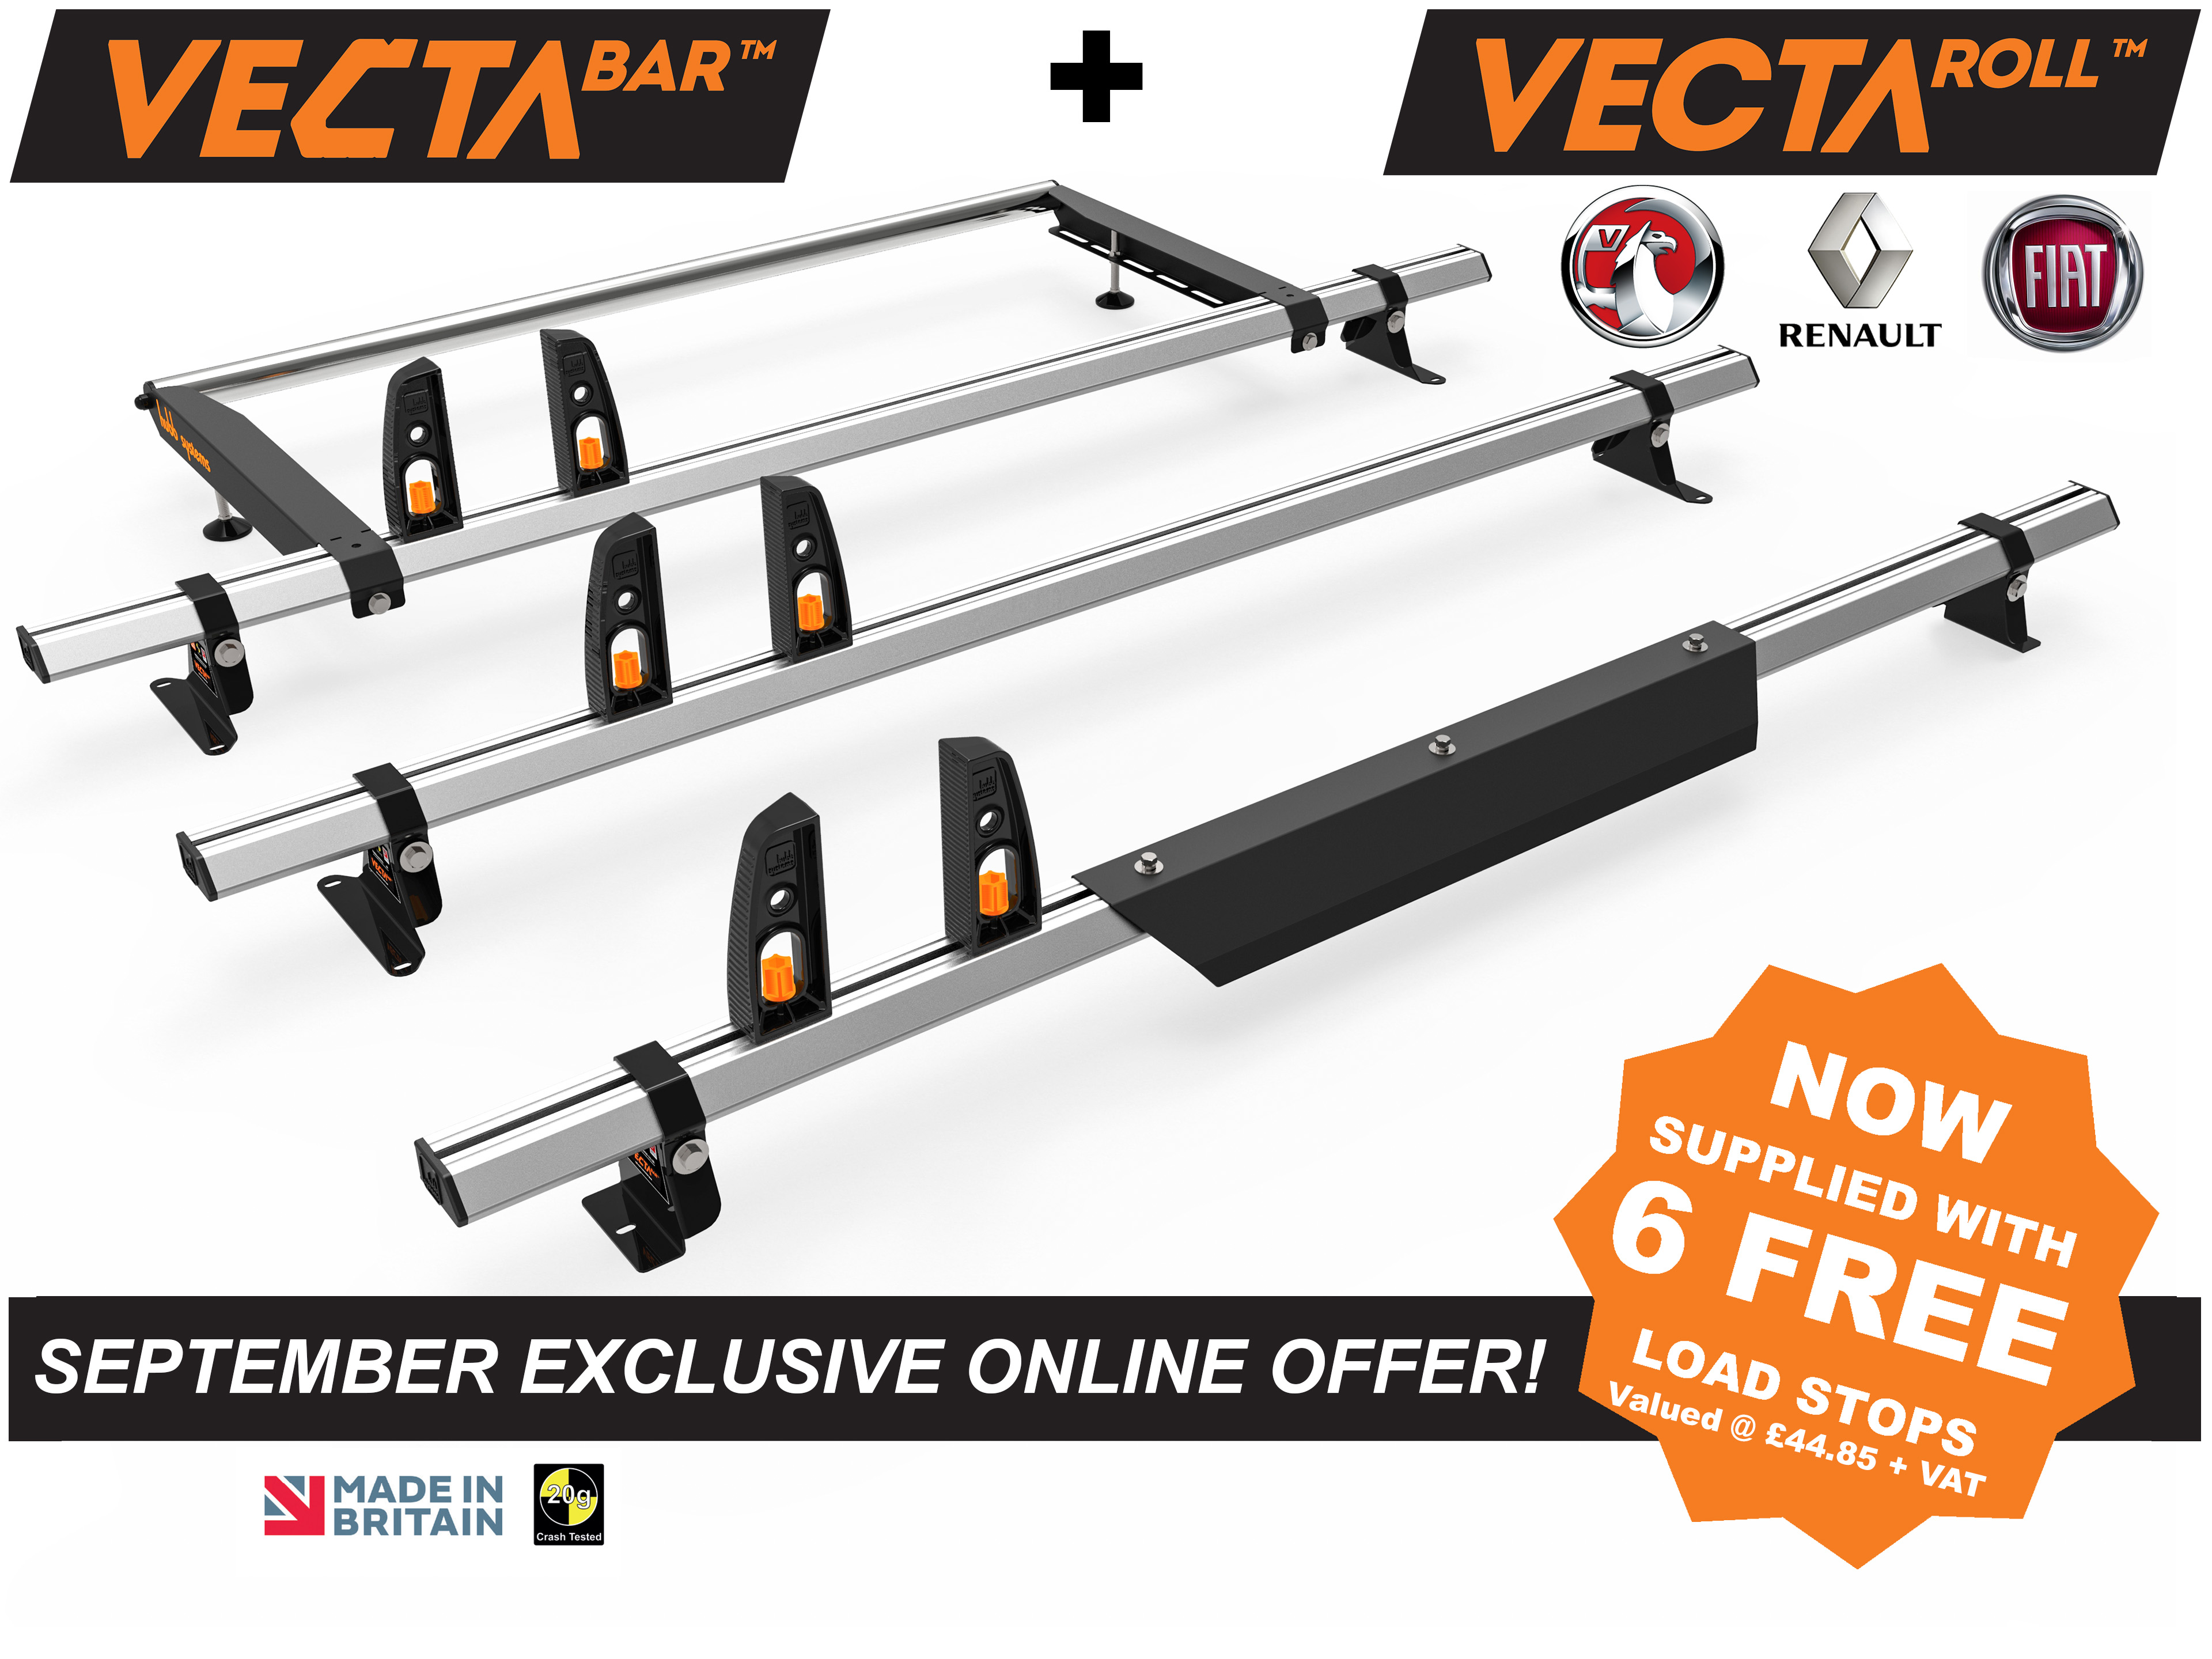 Fiat Talento 2015+ L1/L2 H1 VECTA Bar 3 Roof Bars + Rear Roller + Wind Deflector + 6 Free Load Stops - Special Offer